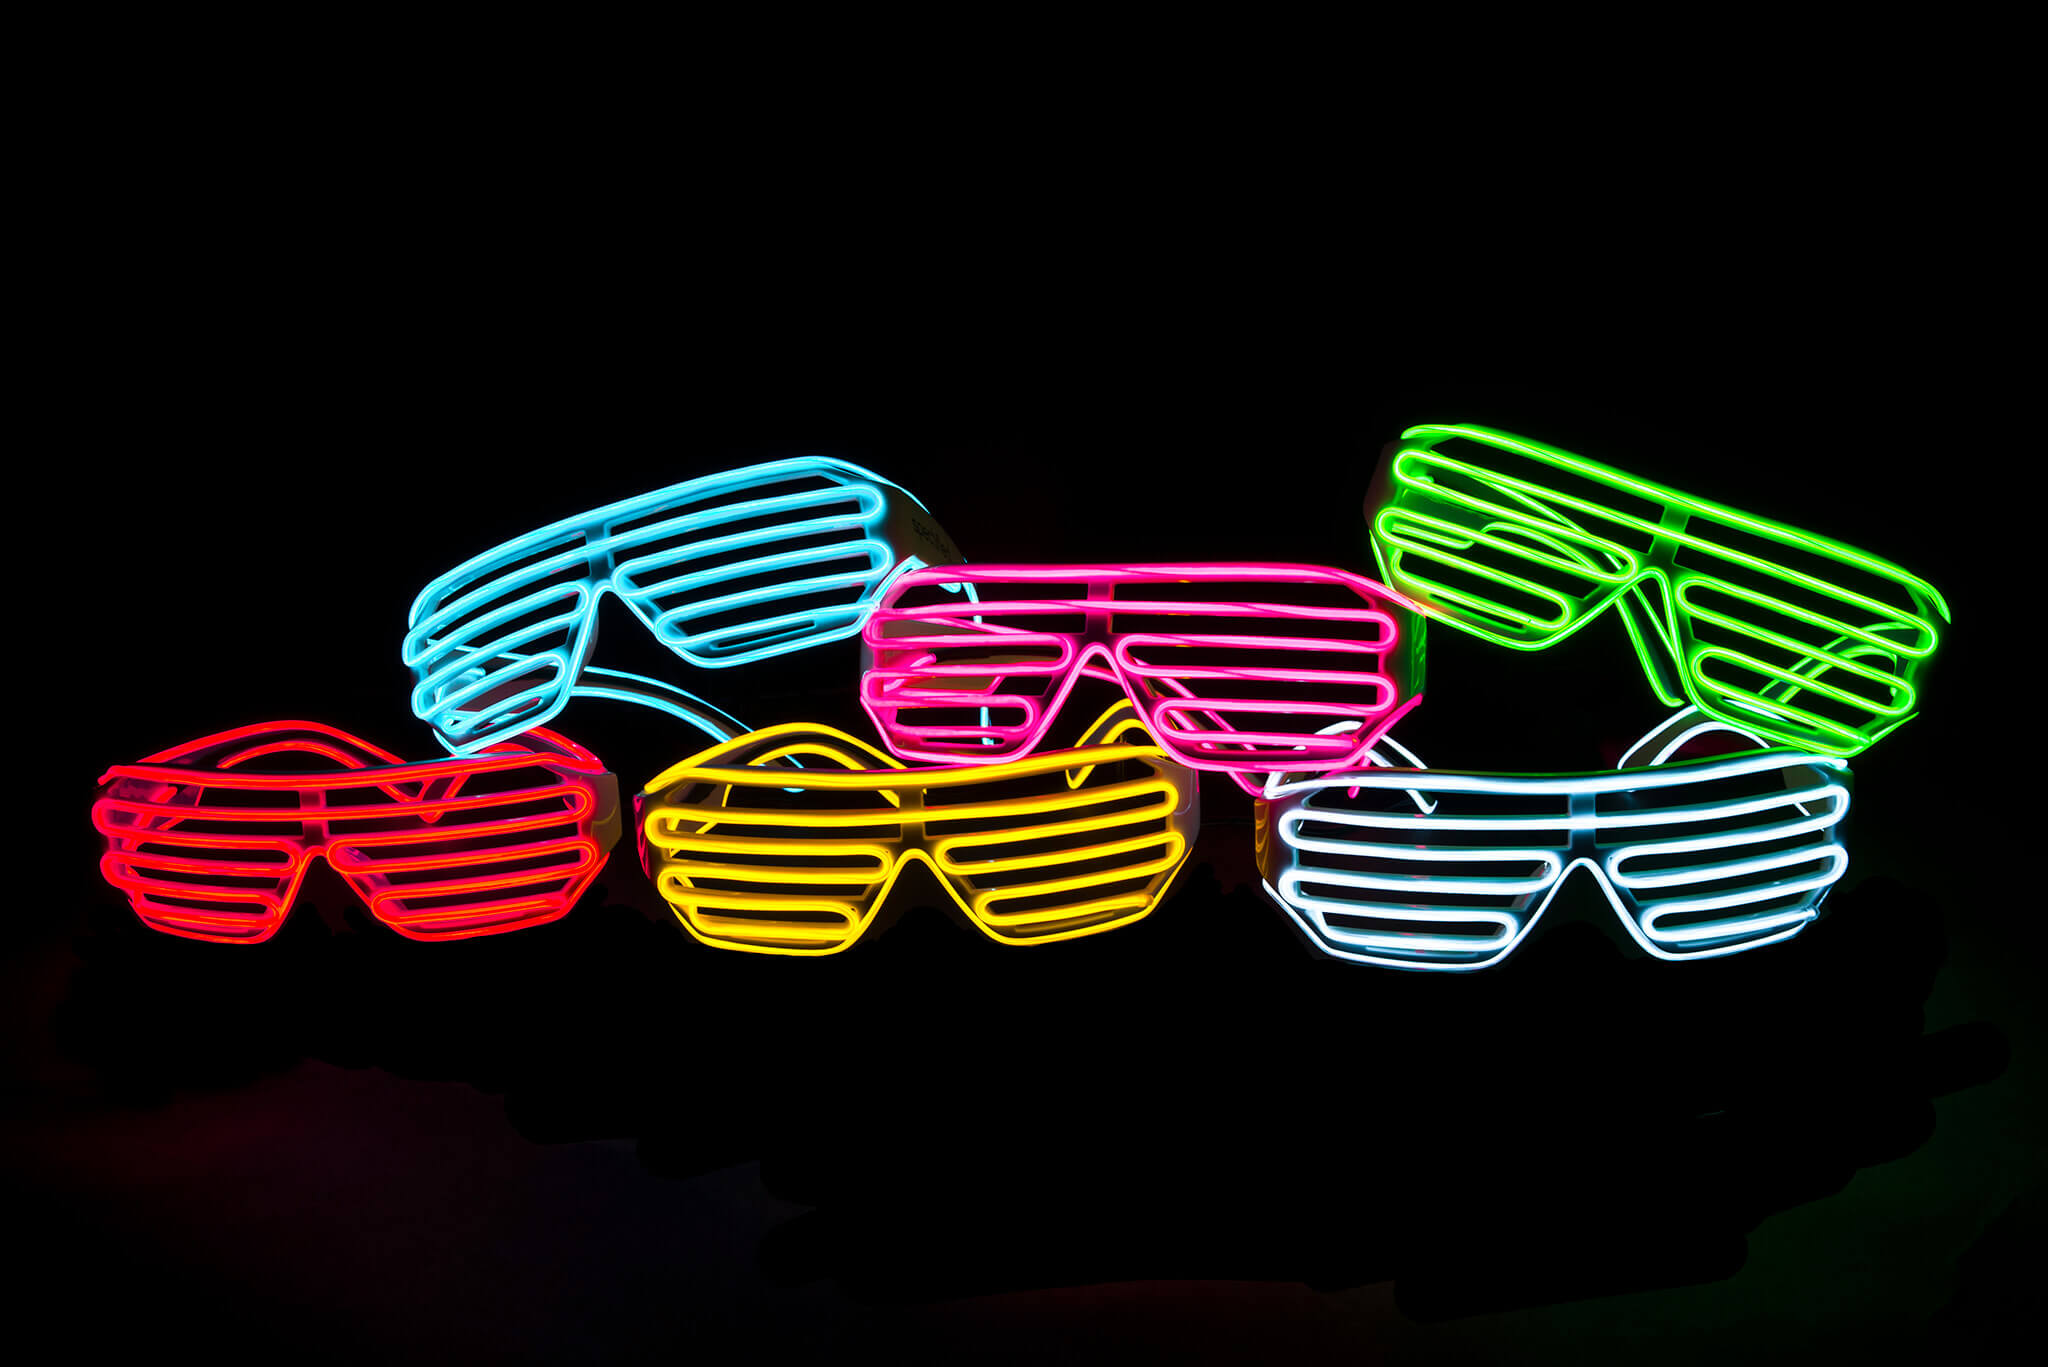 spectified shutter shades